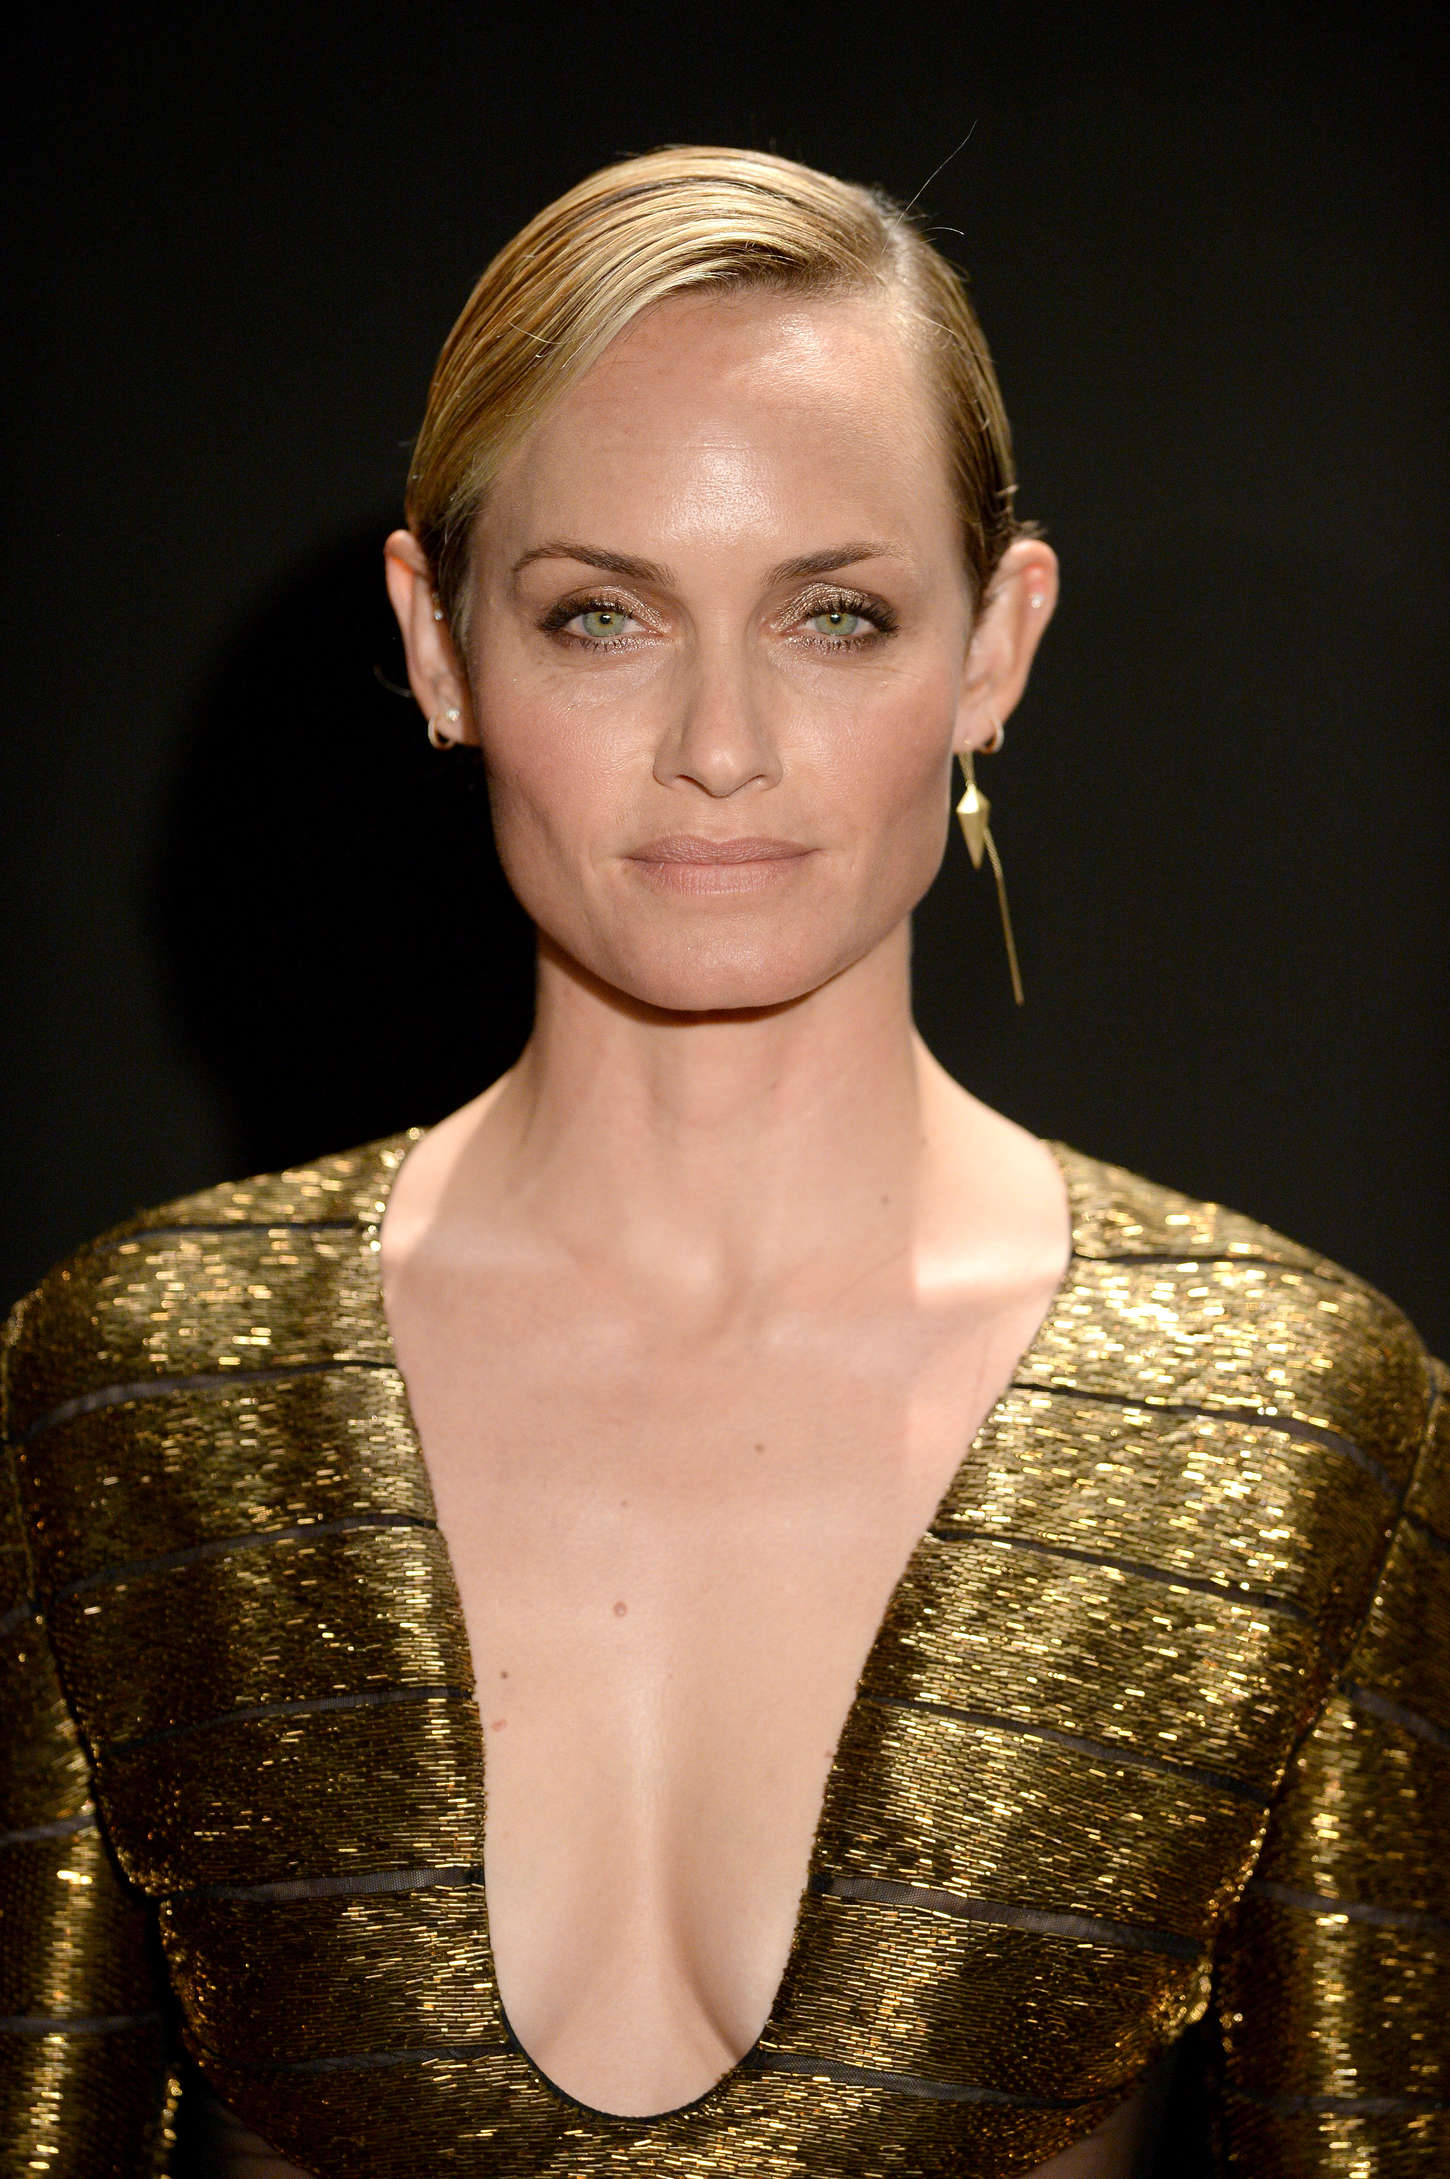 Amber Valletta: Tom Ford 2015 Womenswear Collection Presentation